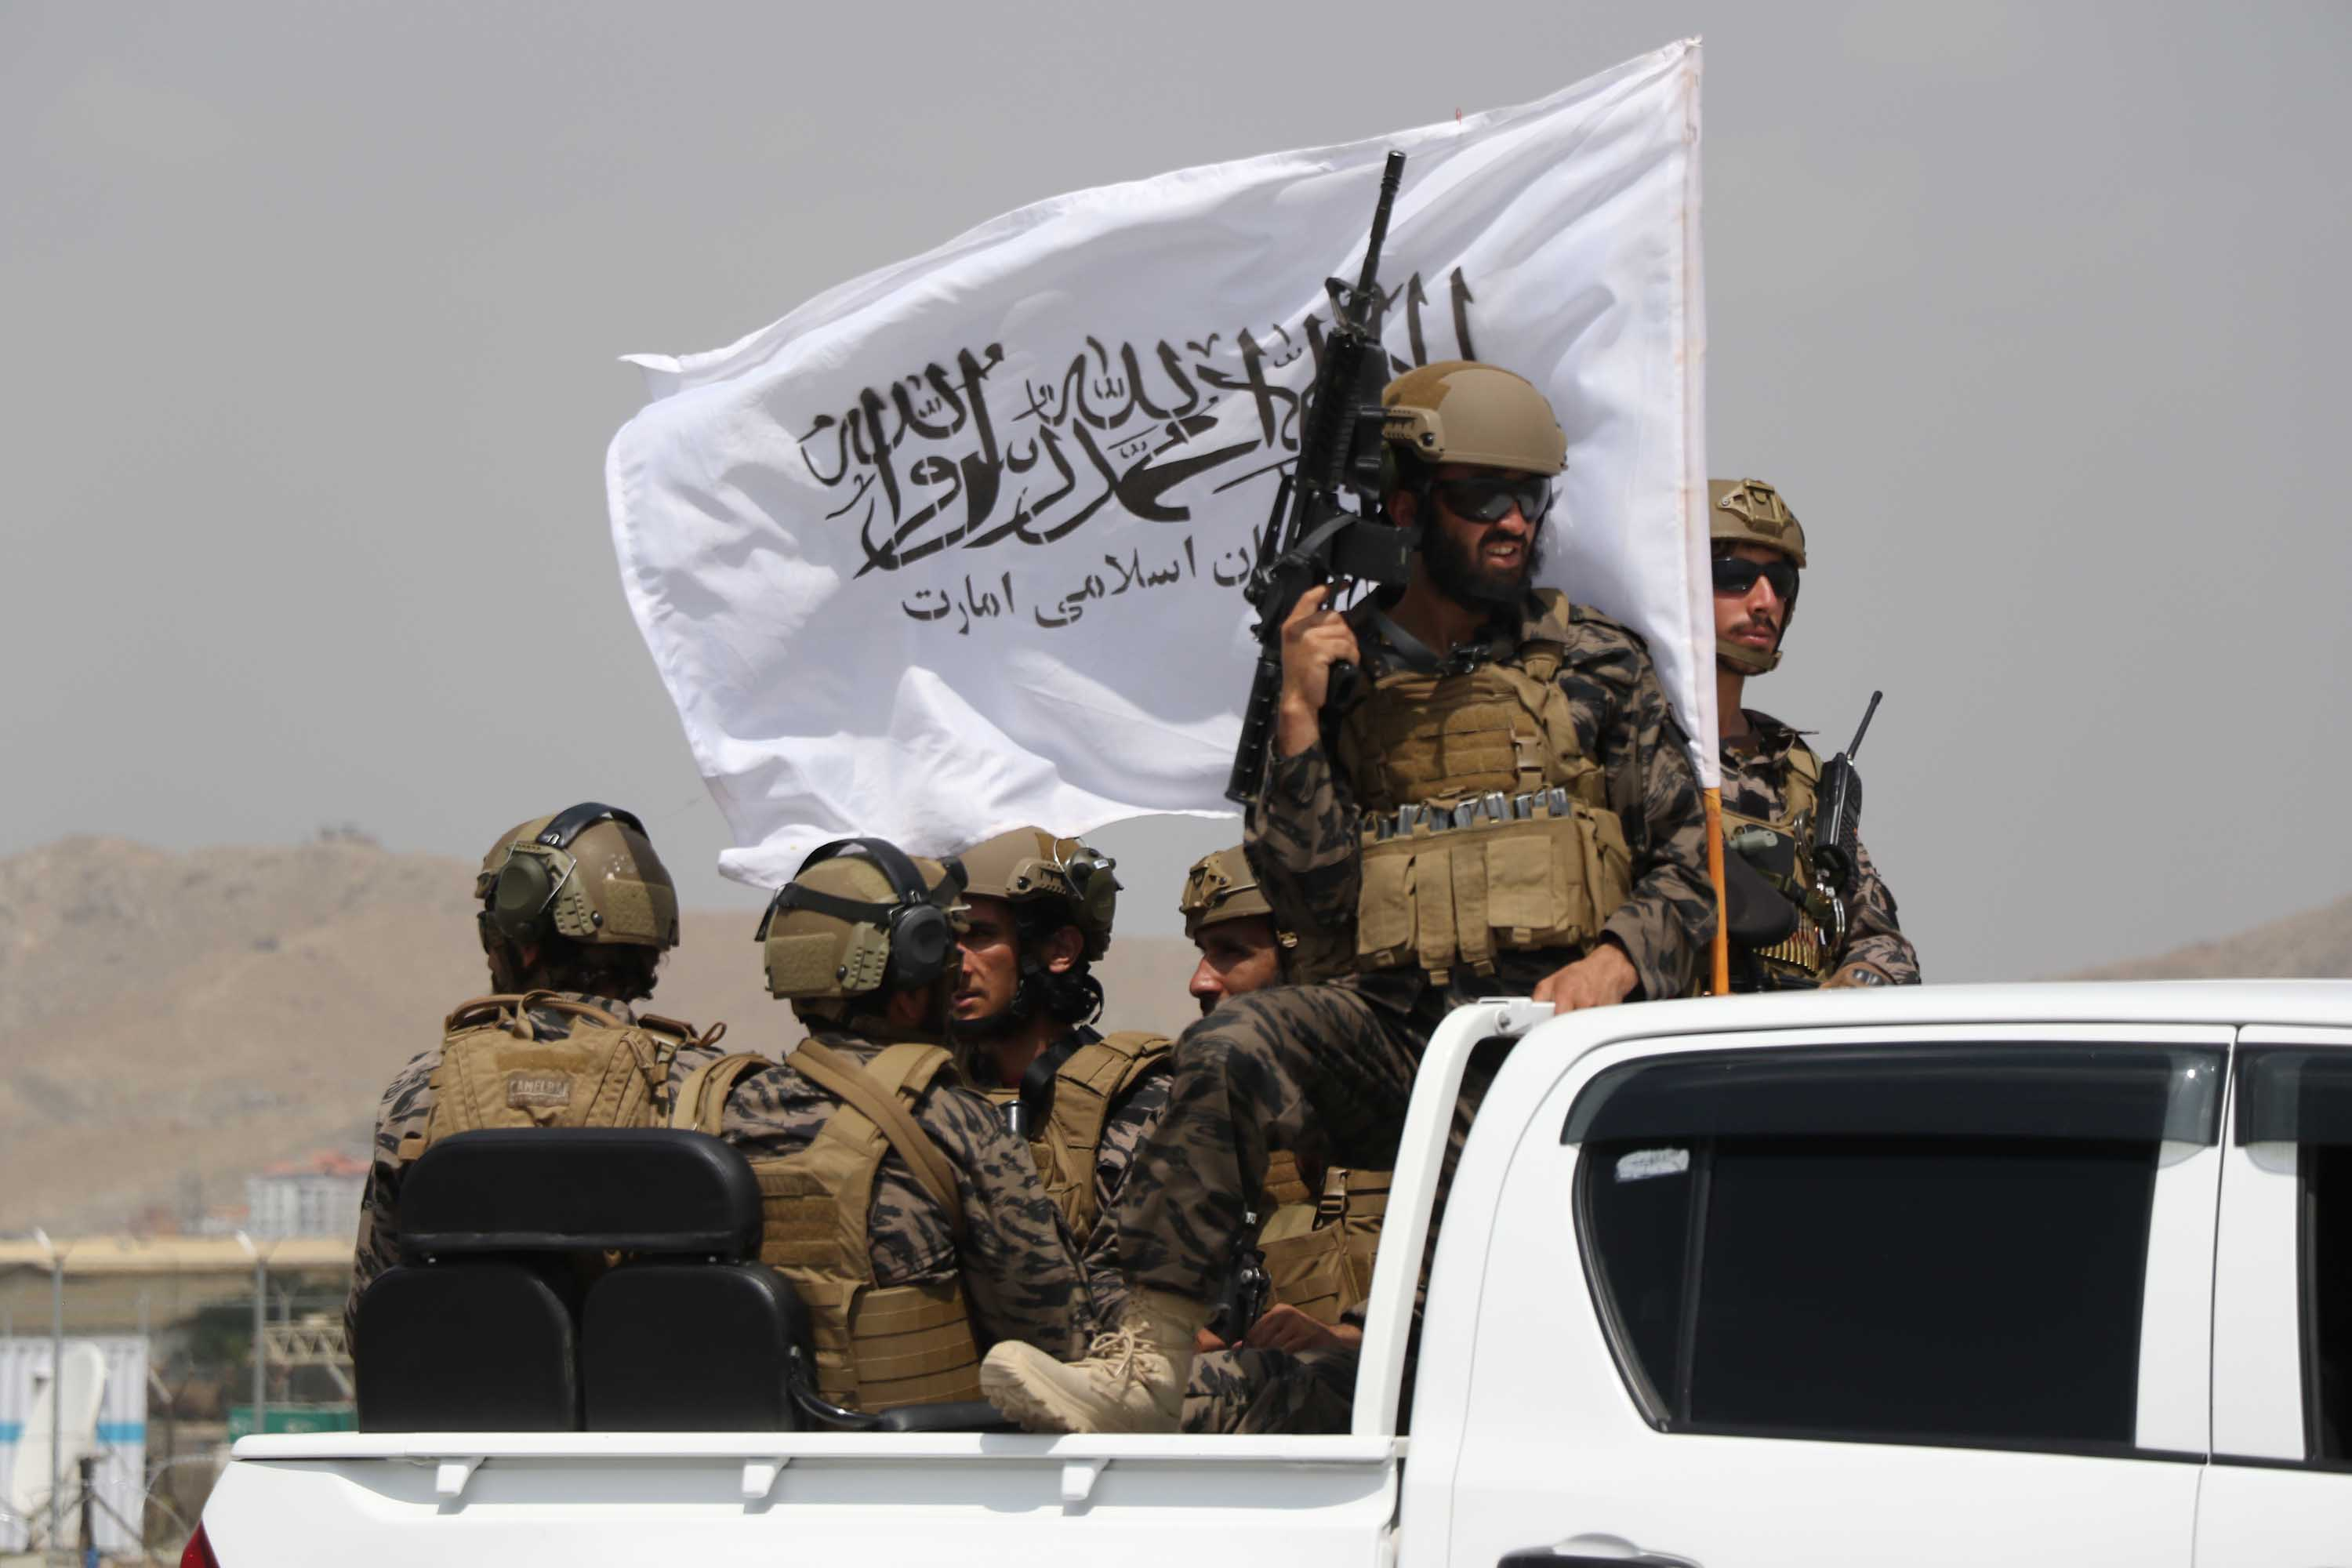 Members of the Taliban take control of Hamid Karzai International Airport after the completion of the U.S. withdrawal from Afghanistan on August 31.